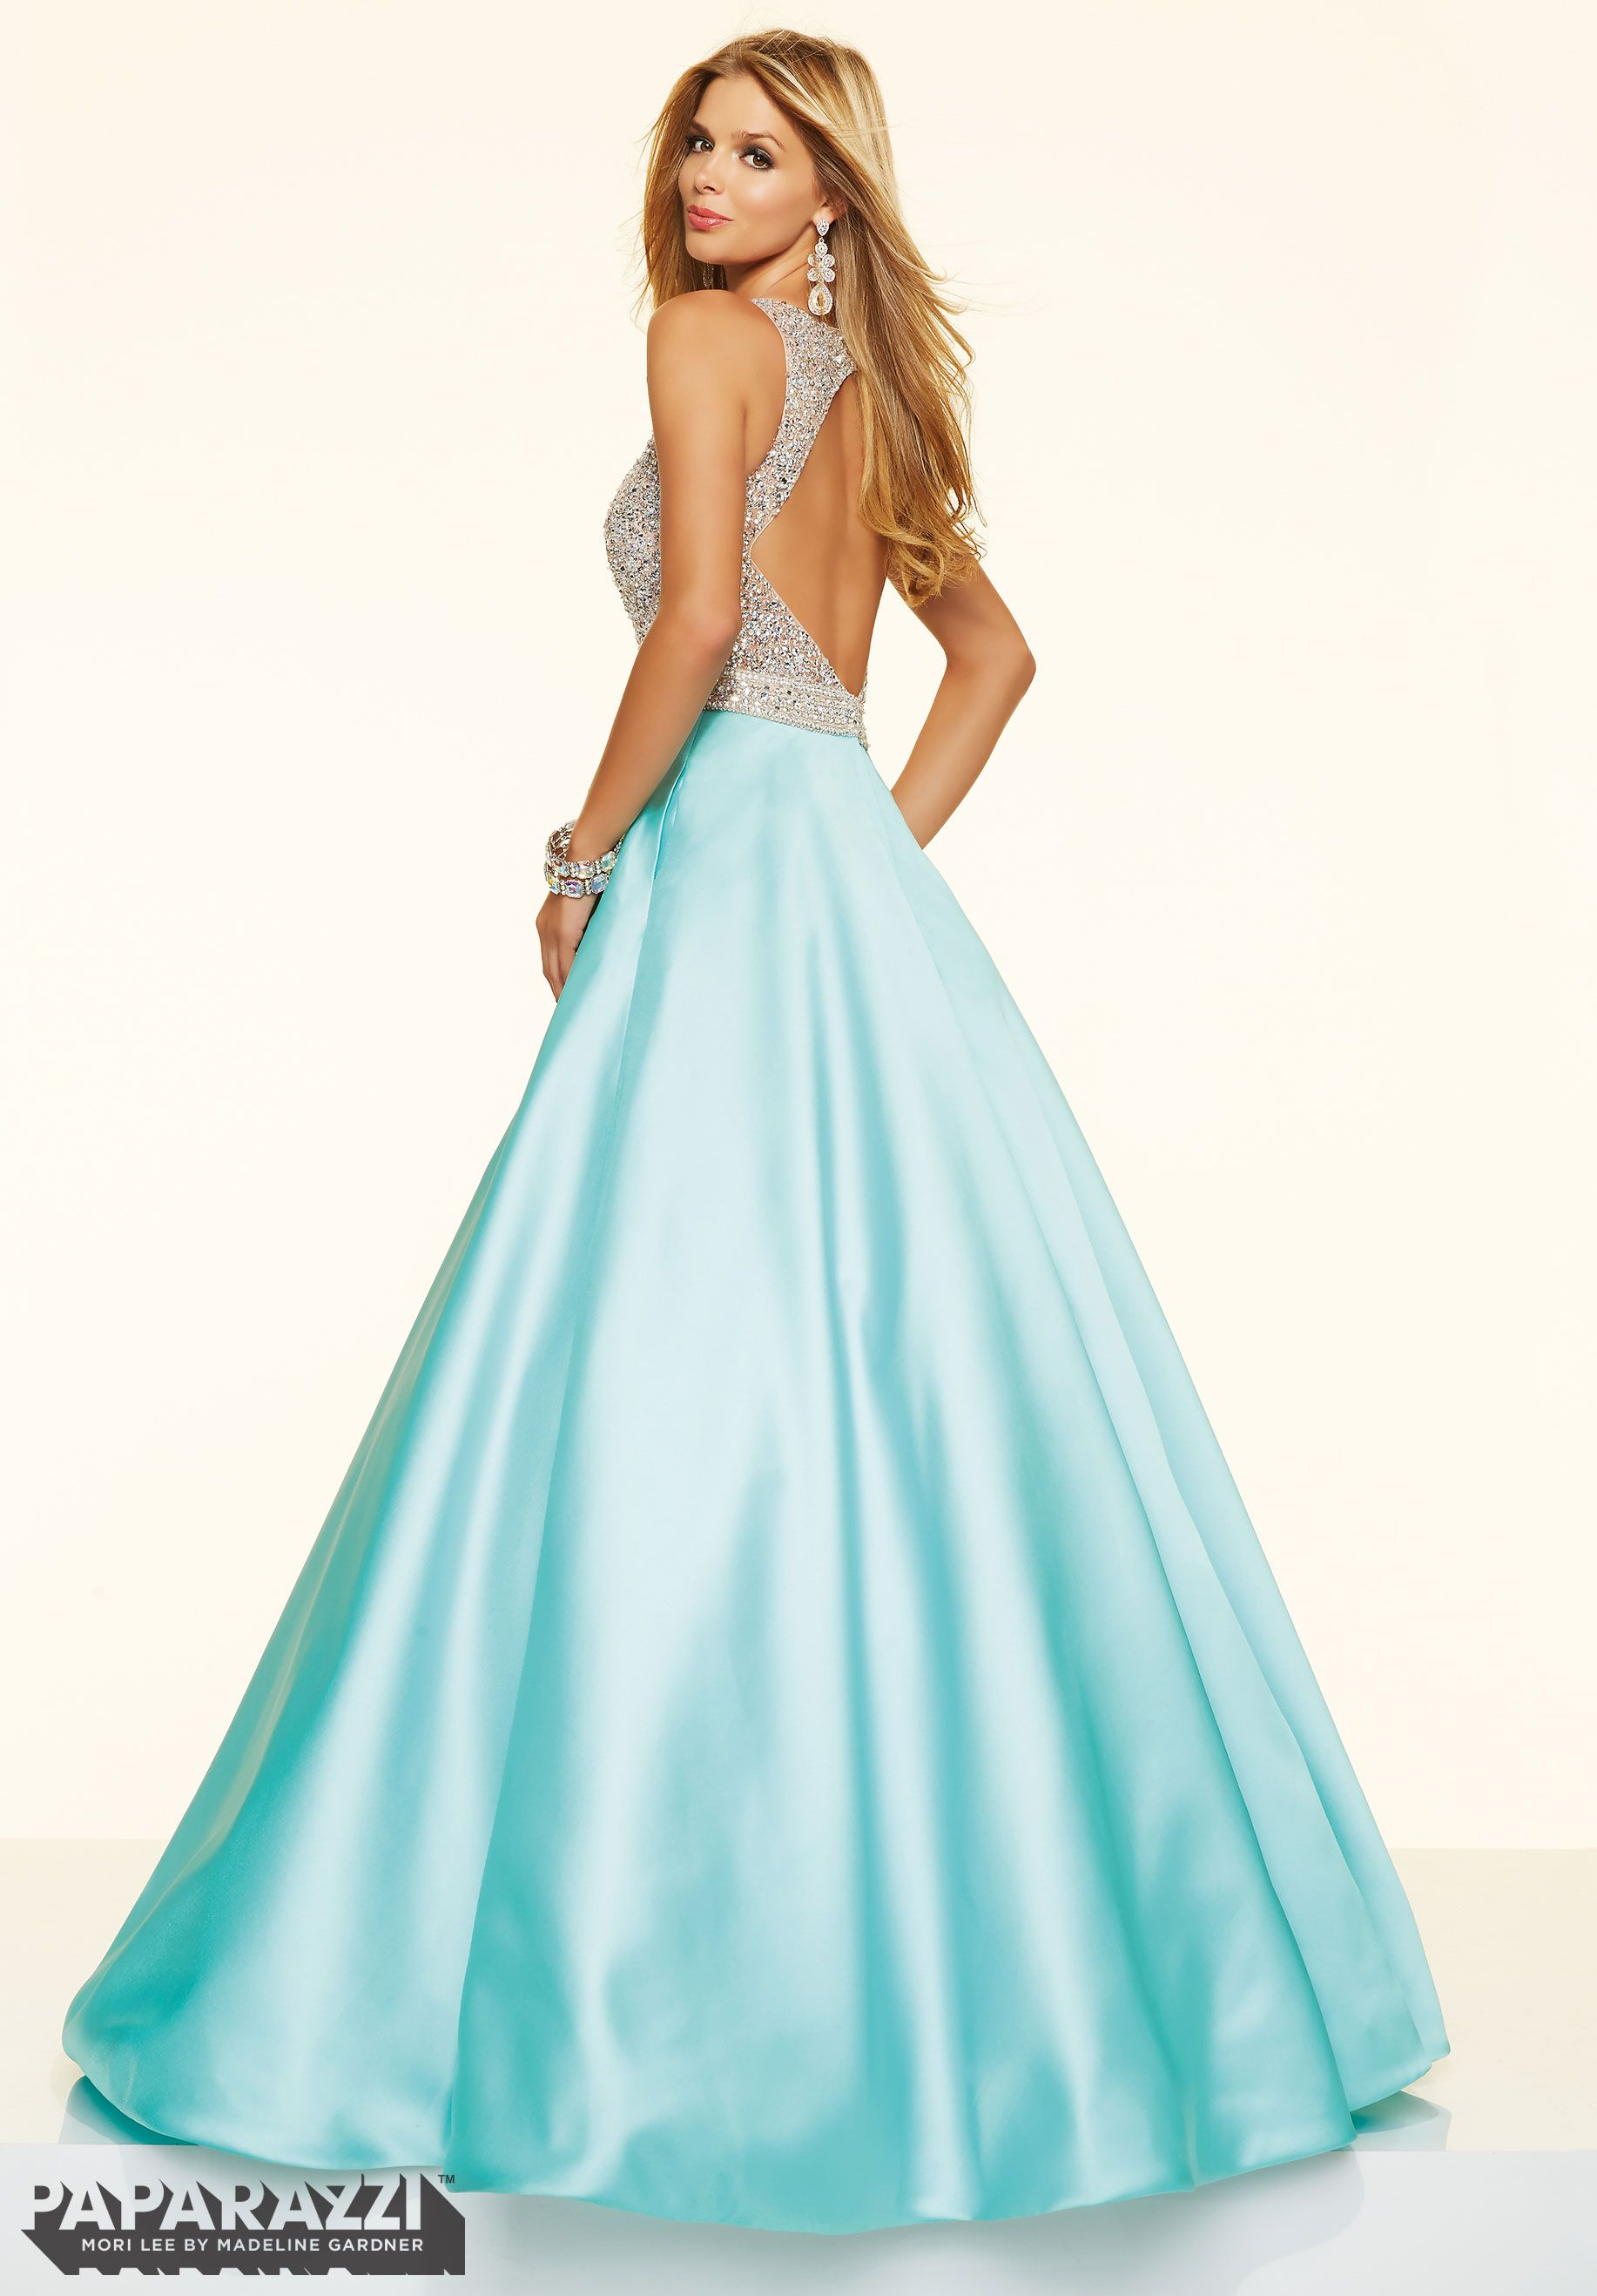 Find this beautiful paparazzi by mori lee dress at whatchamacallit